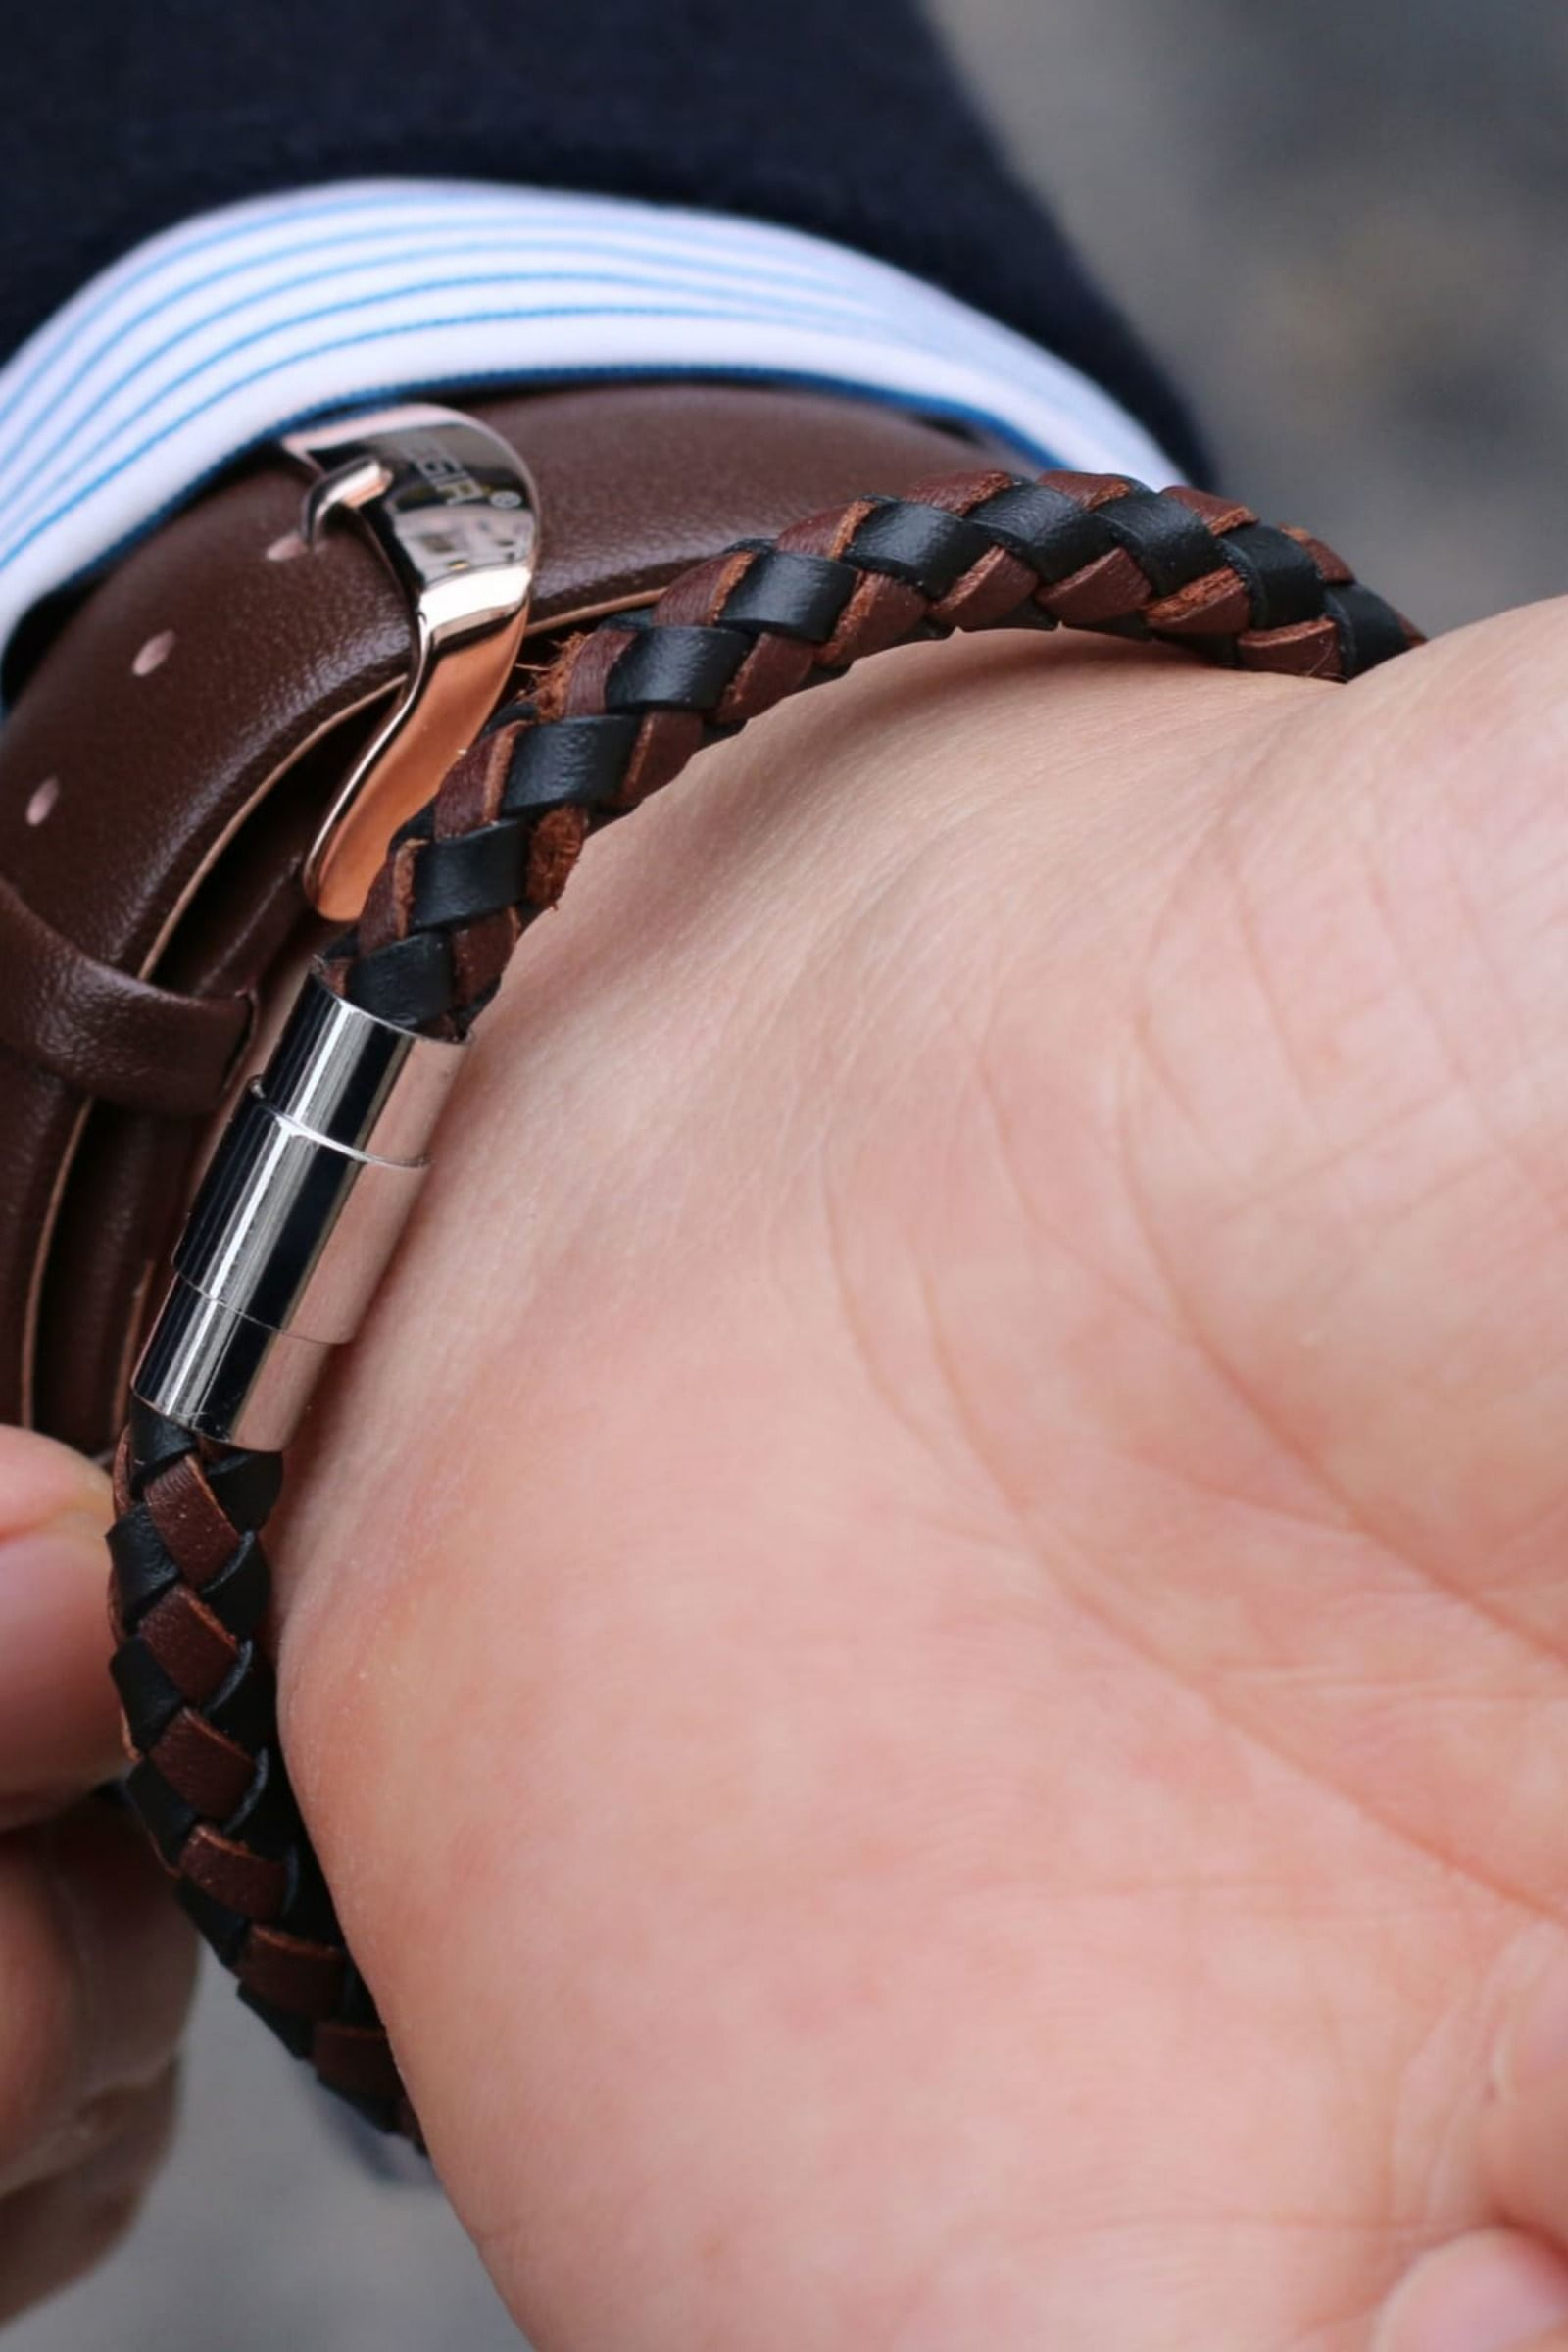 Brown & Black Bolo Braided Leather Bracelet is part of pizza - This handsome black and brown braided bracelet looks cool no matter what you wear it with  Keep it casual or dress it up!   The polished magnetic steel enclosure's the perfect finishing touch